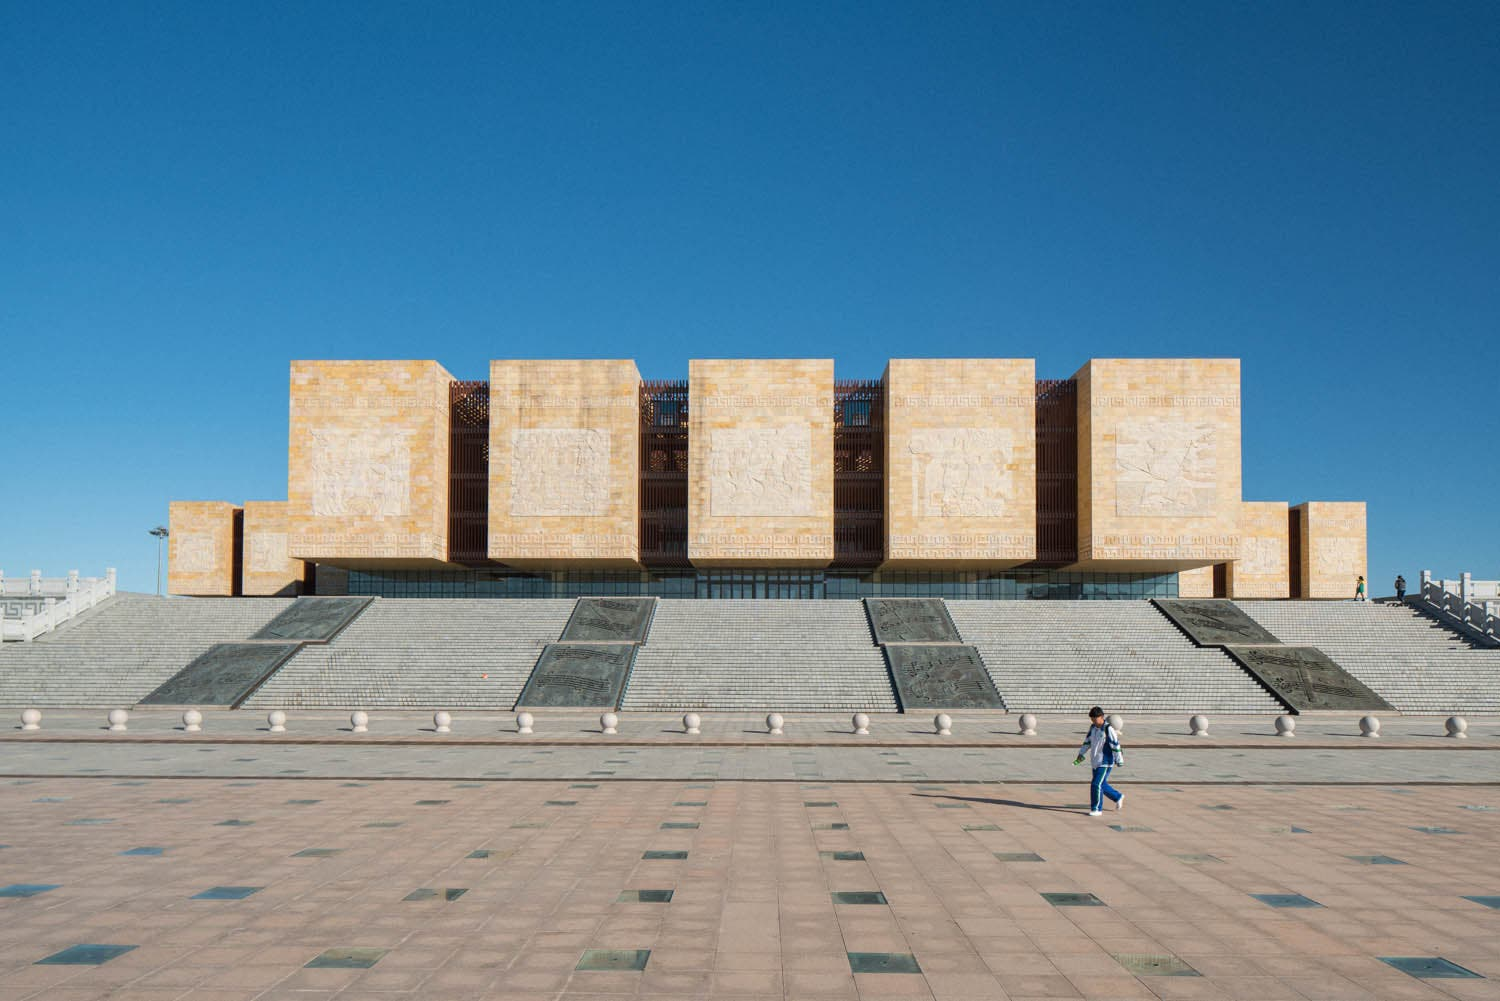 Ordos An Architectural Photographic Study